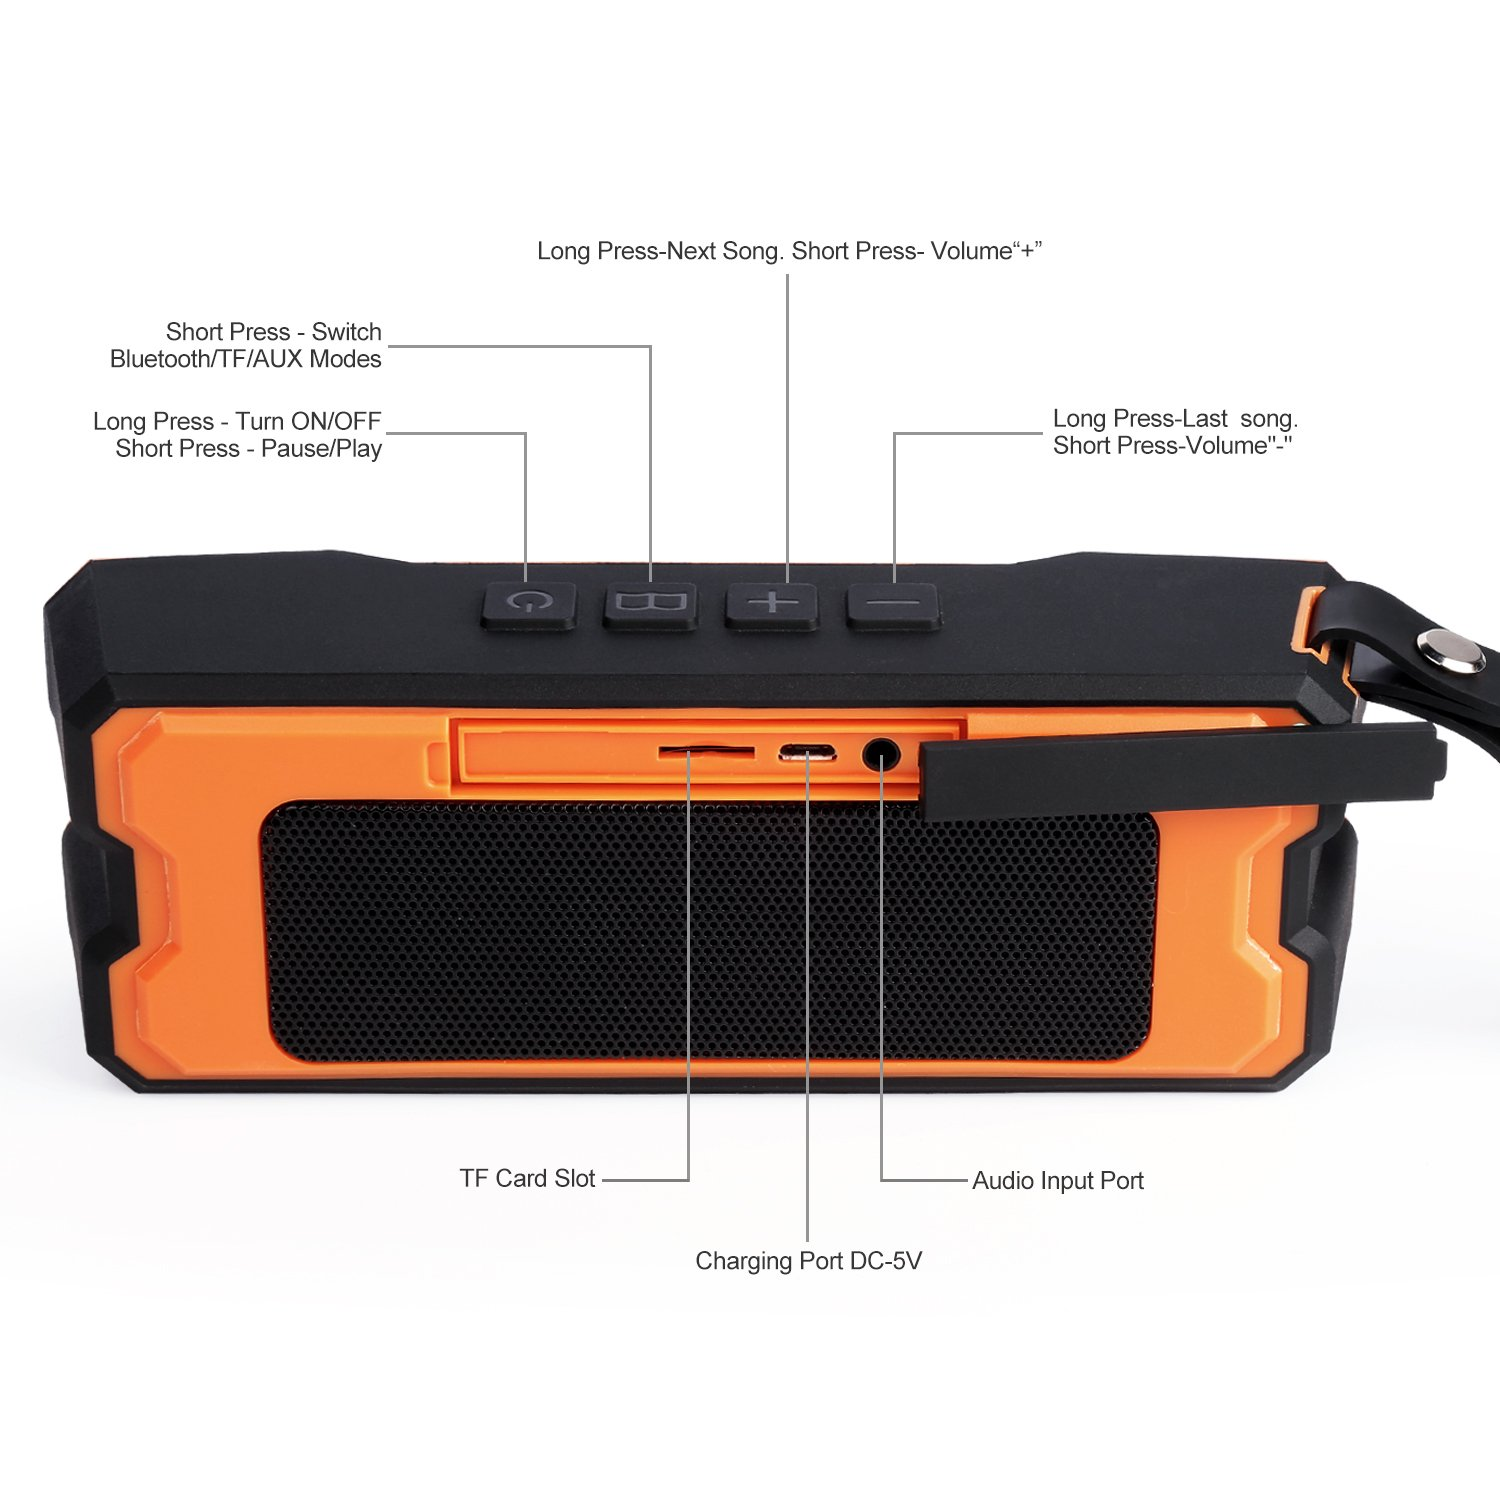 Bluetooth Waterproof Speakers, Fivanus Waterproof Portable Wireless Speakers Outdoor/Indoor Dustproof Shockproof Speakers Dual Enhanced Bass Driver(Low Harmonic Distortion and Superior Sound) (w/ Hands-Free Calling up to 30 Hrs Playtime)